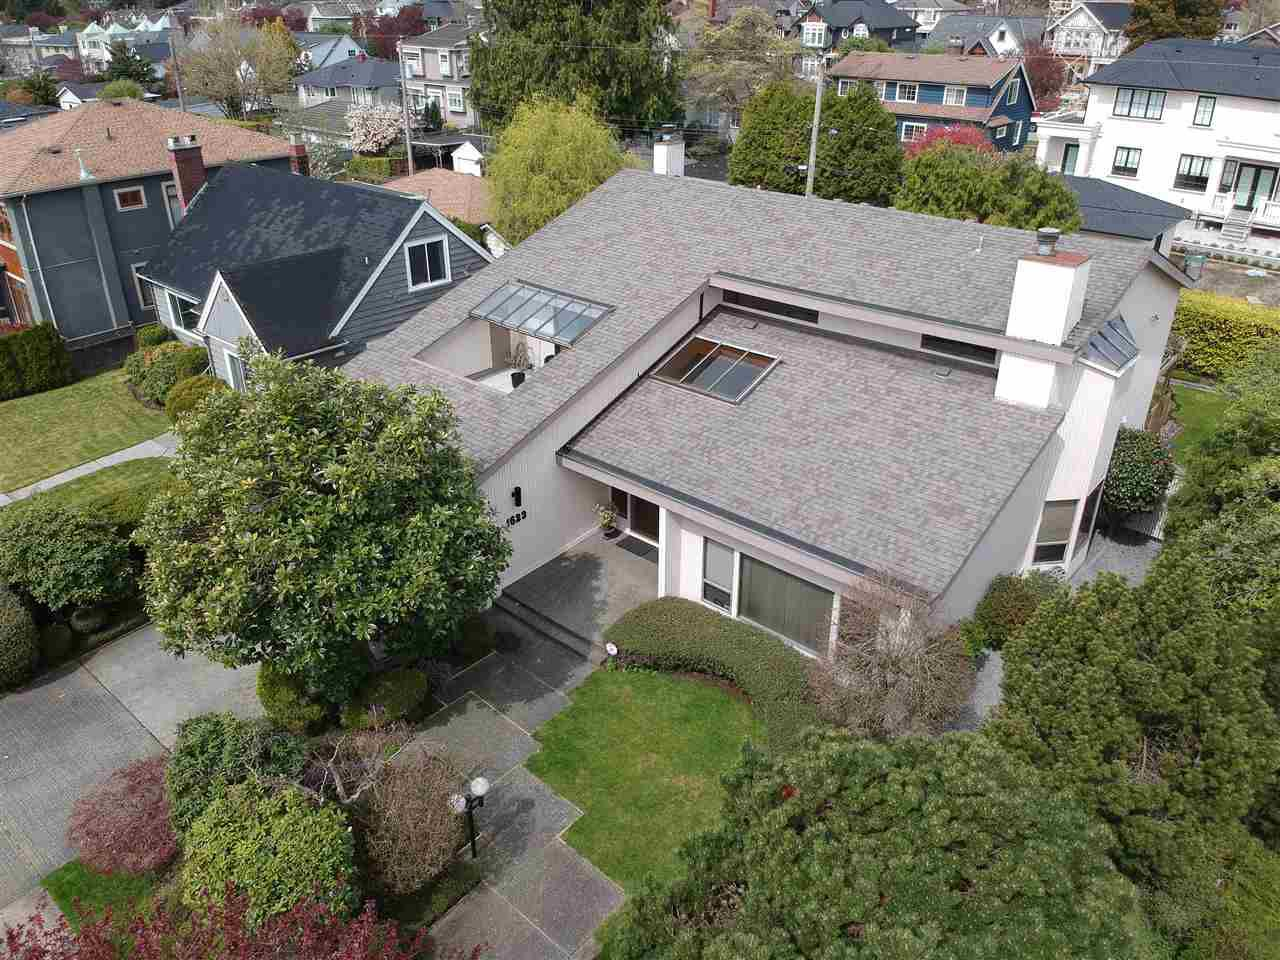 Main Photo: 1623 W 59TH Avenue in Vancouver: South Granville House for sale (Vancouver West)  : MLS®# R2260307